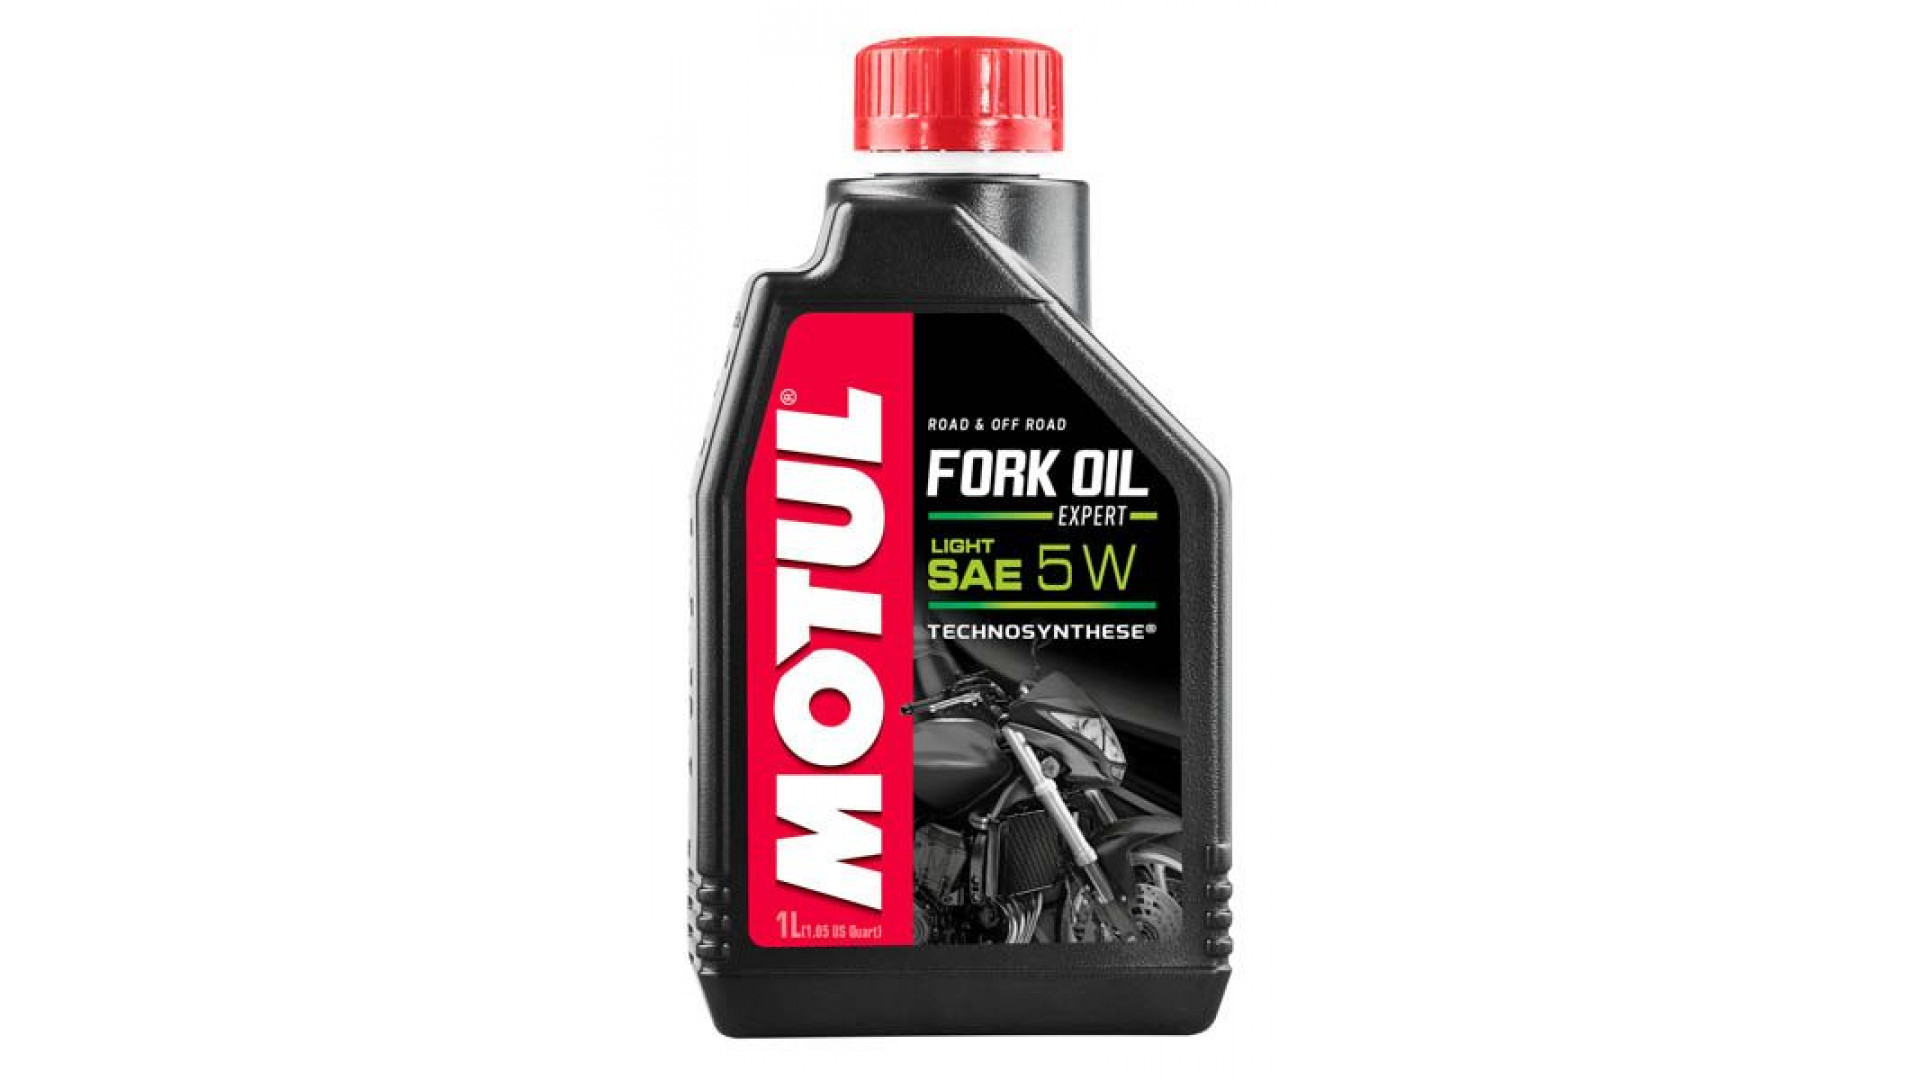 Fork Oil Expert light Motul